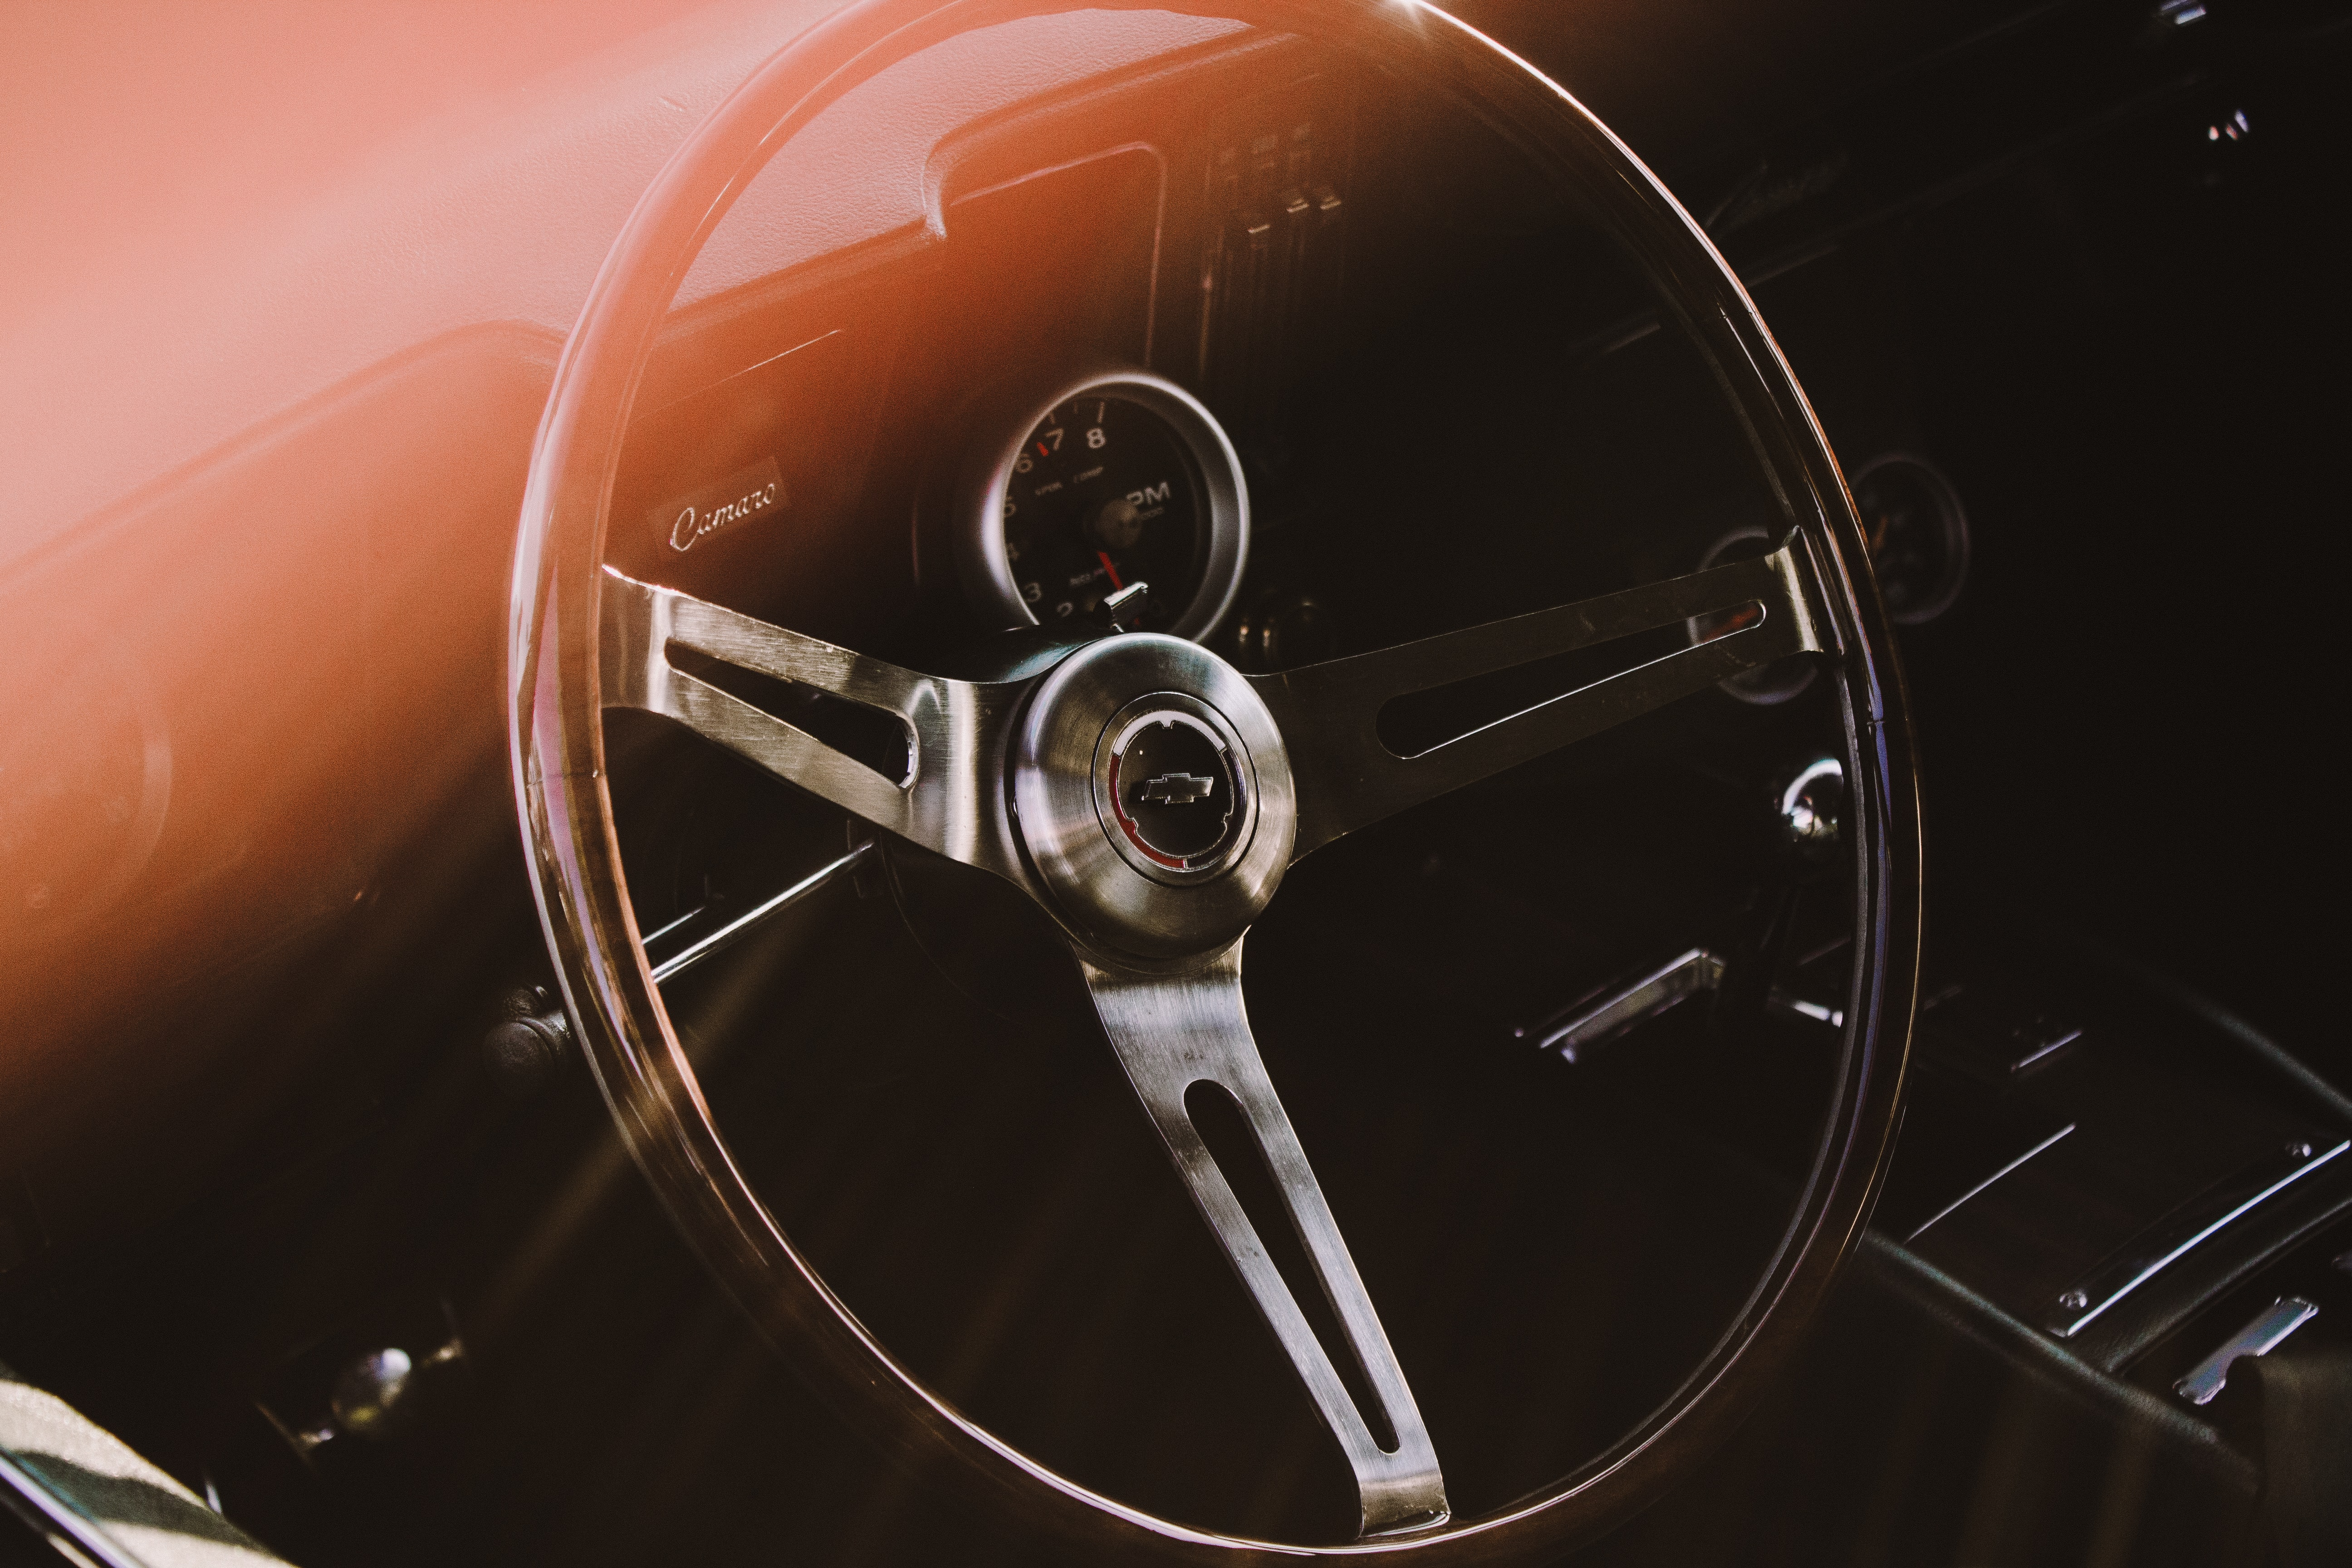 A steering wheel in a classic car.